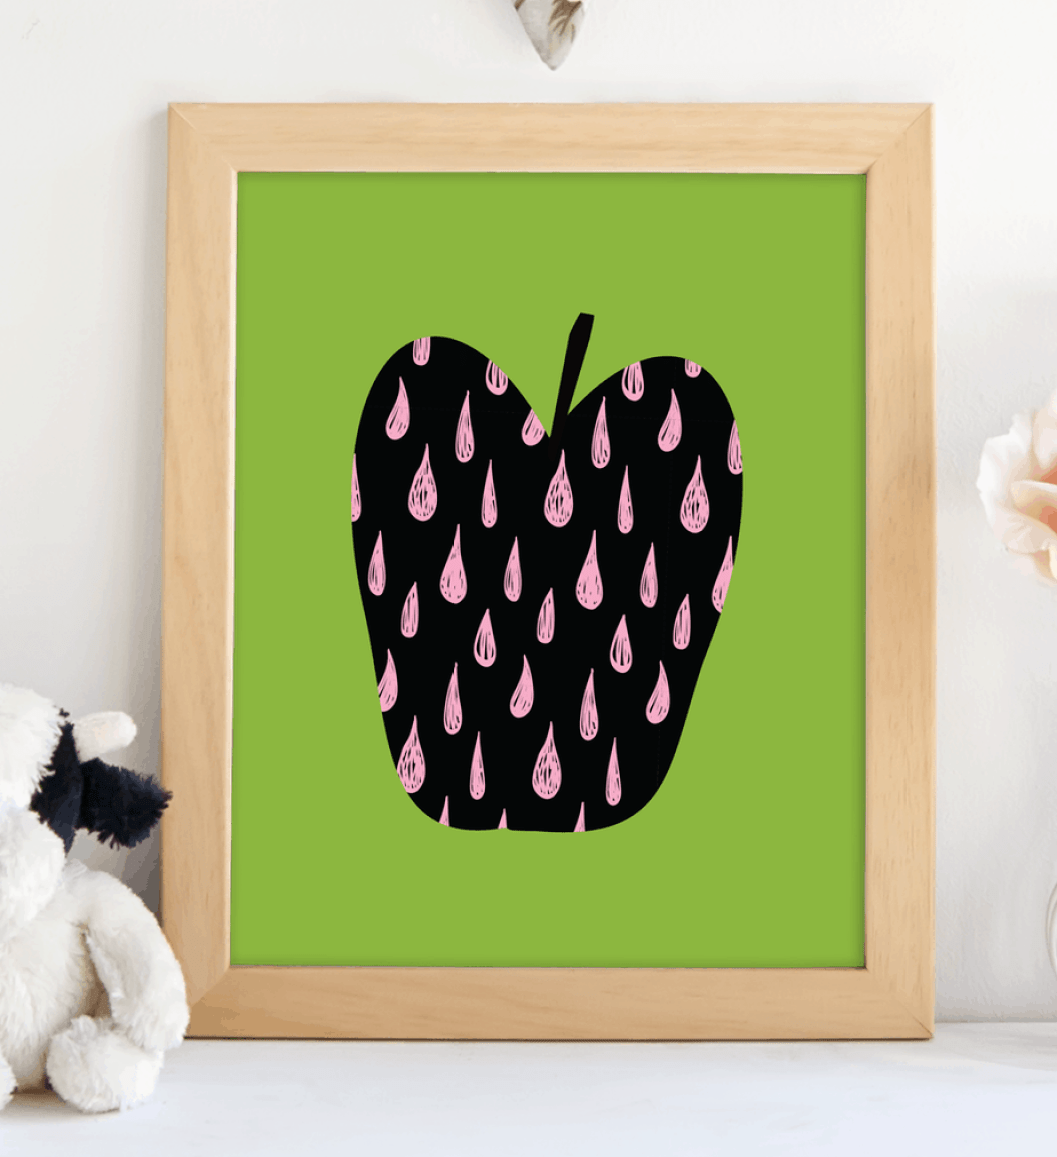 Retro Heart Apple.shabbymintchicparty.etsy.coom